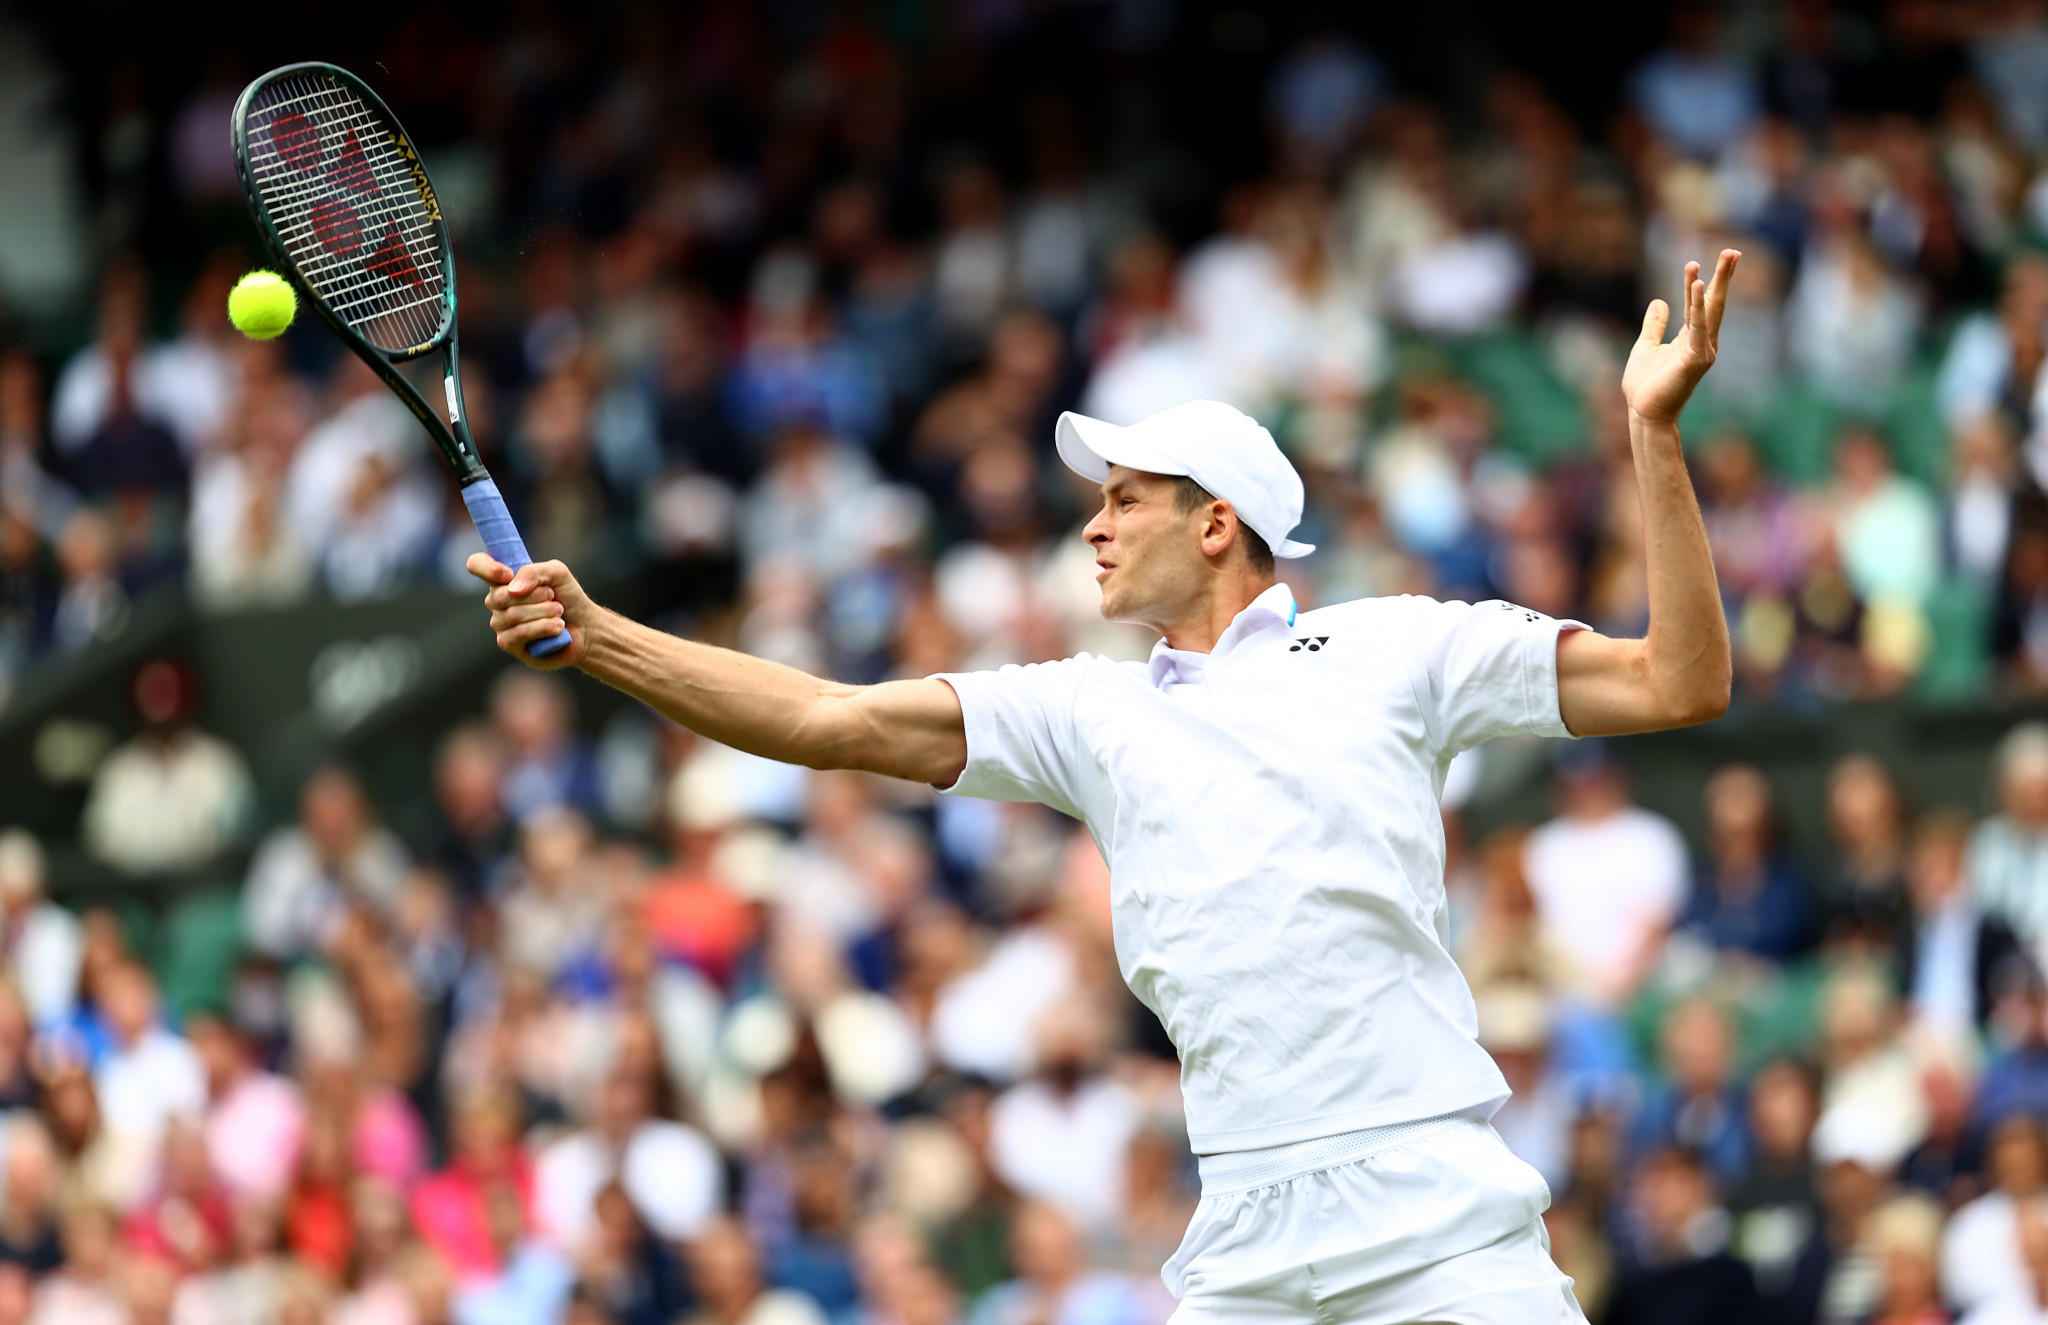 Federer crashes out as top seed Djokovic cruises through in Wimbledon men's singles quarter-finals